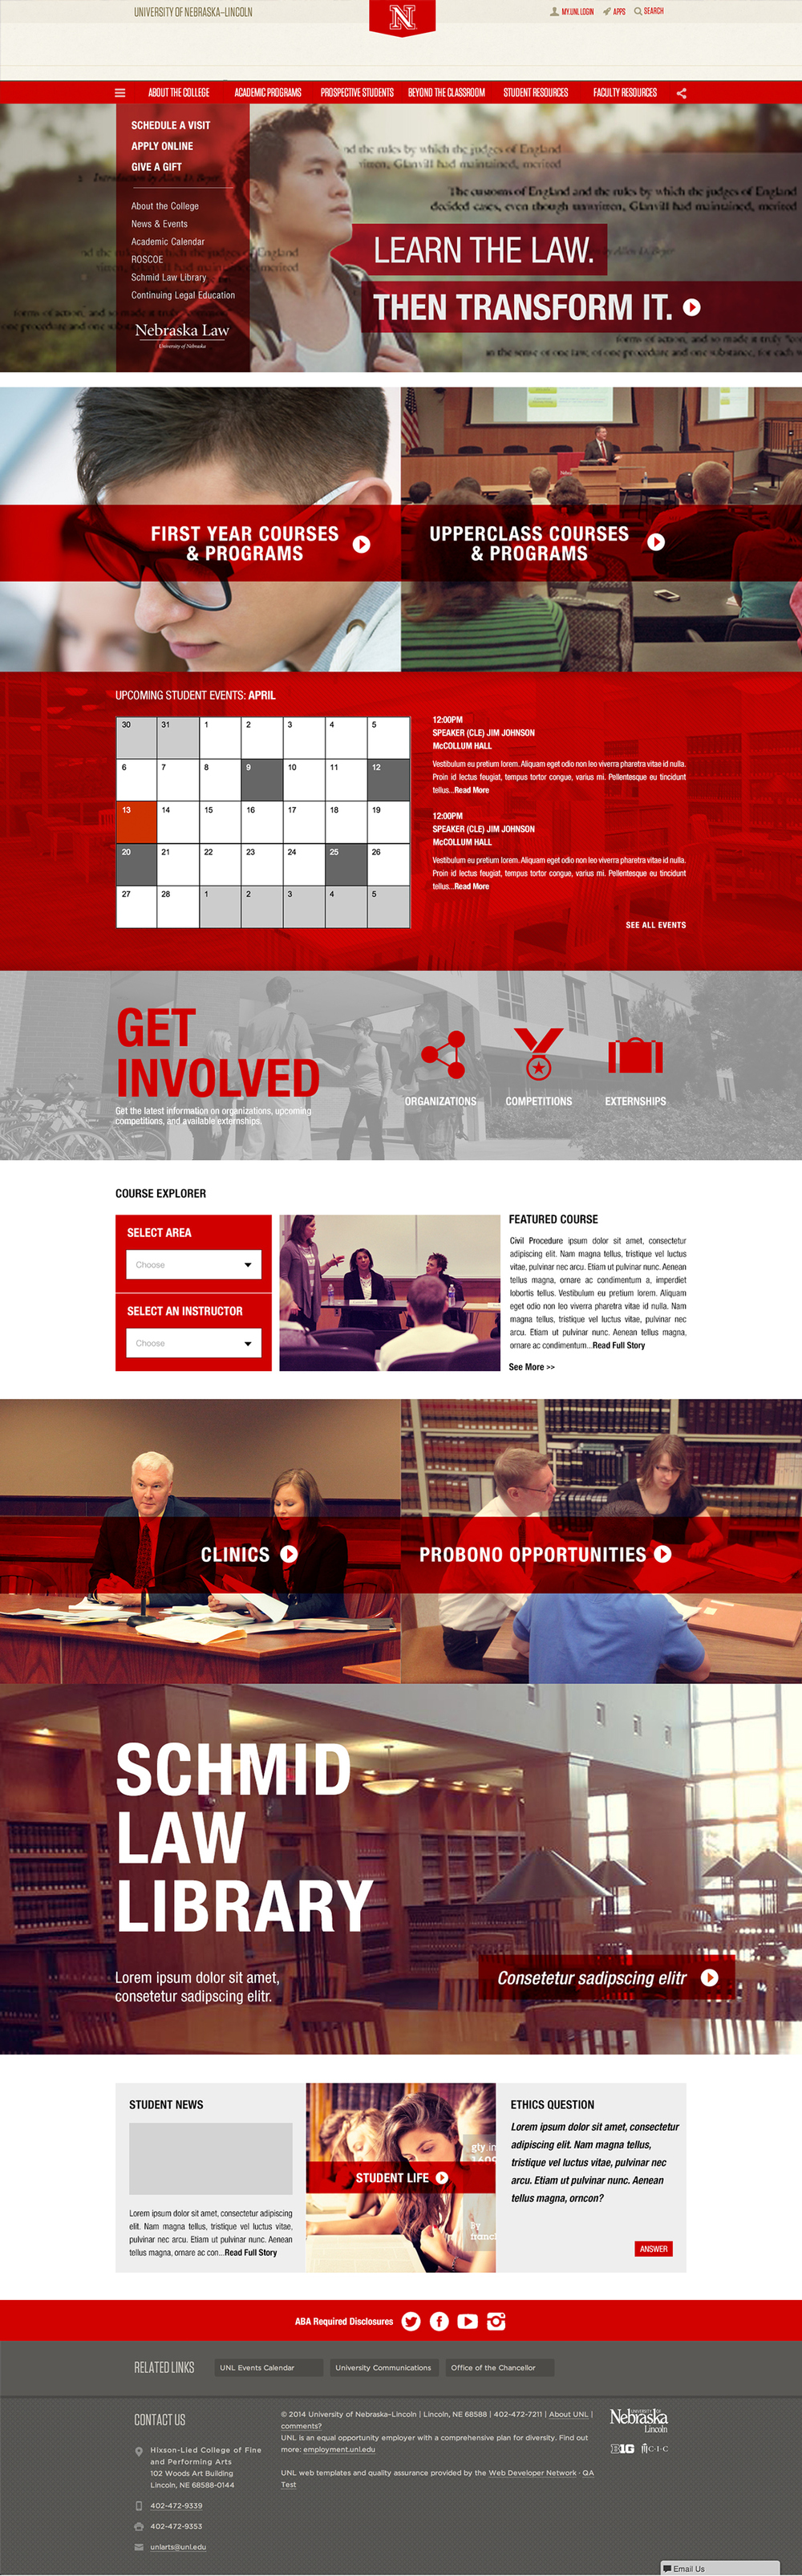 University of Nebraska College of Law Website - law.unl.edu